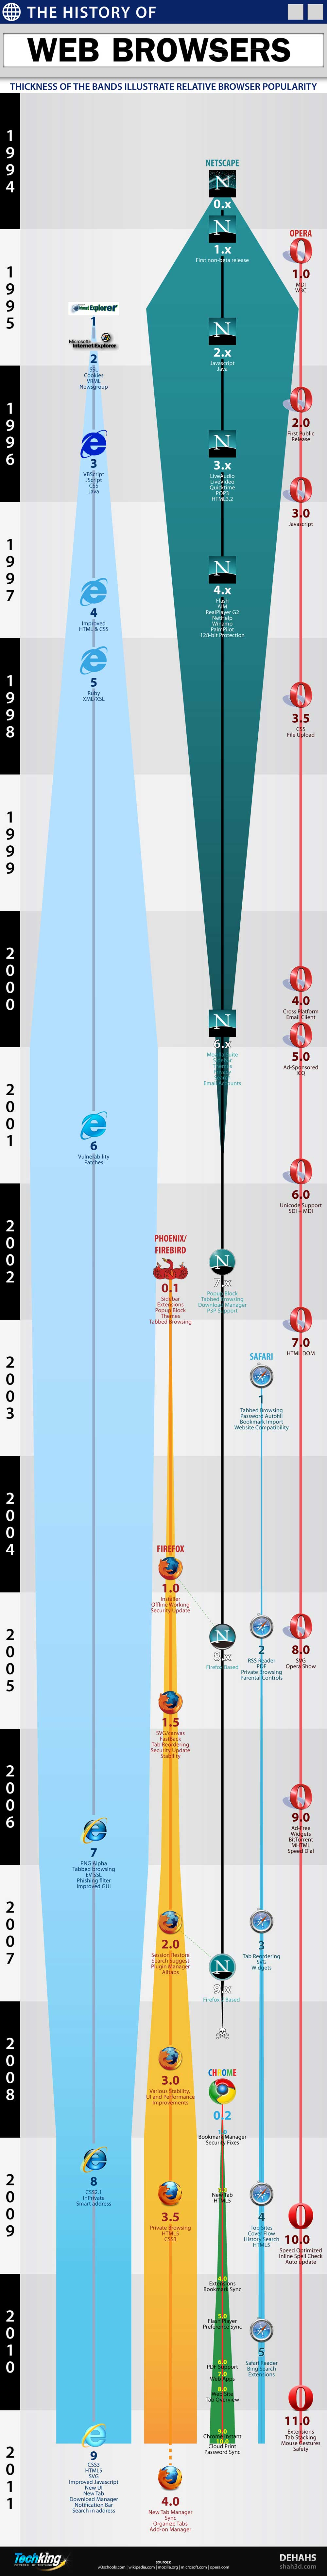 Internet-Web-Broswer-History-Infographic